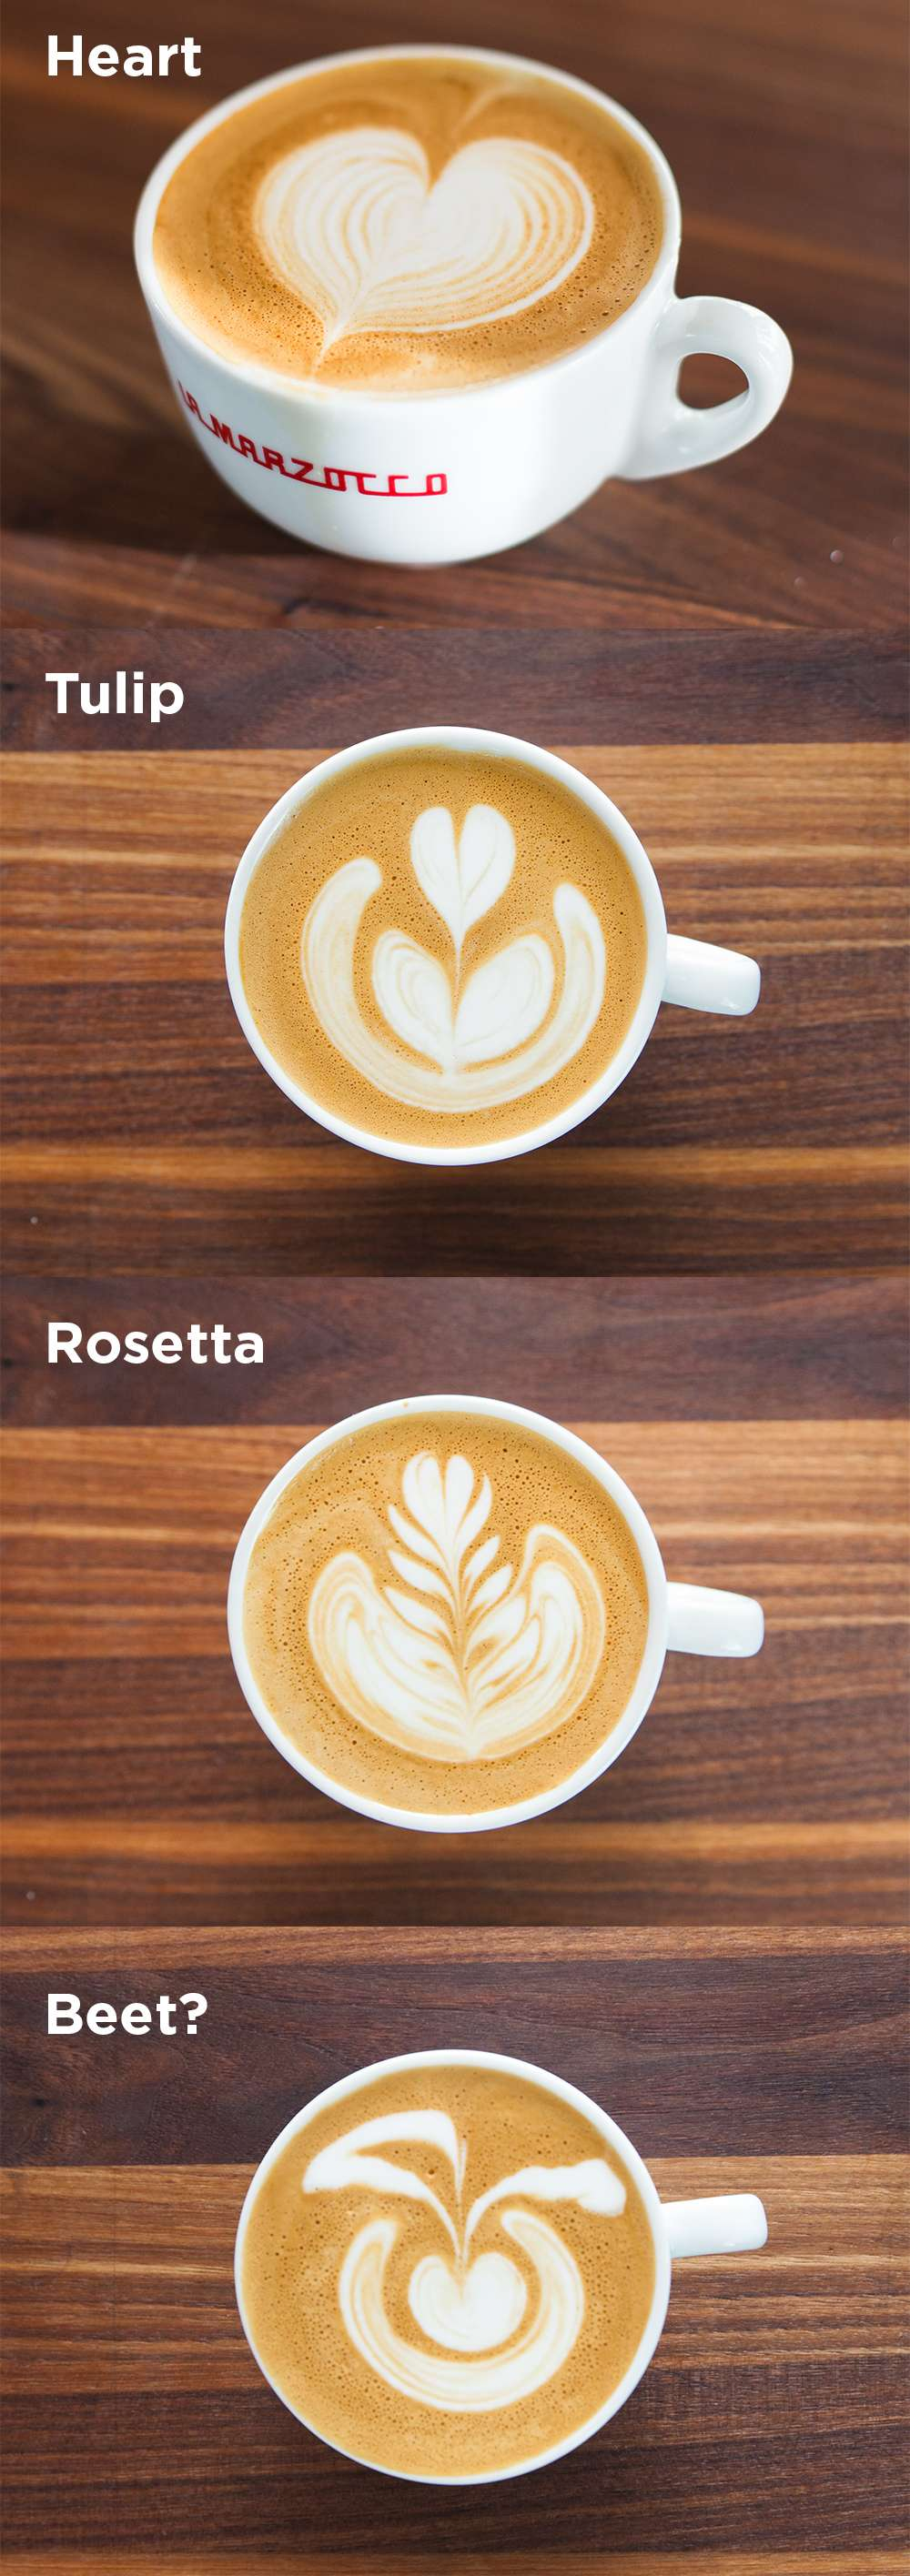 Latte Art Designs : How to diy coffee latte art at home beesdiy